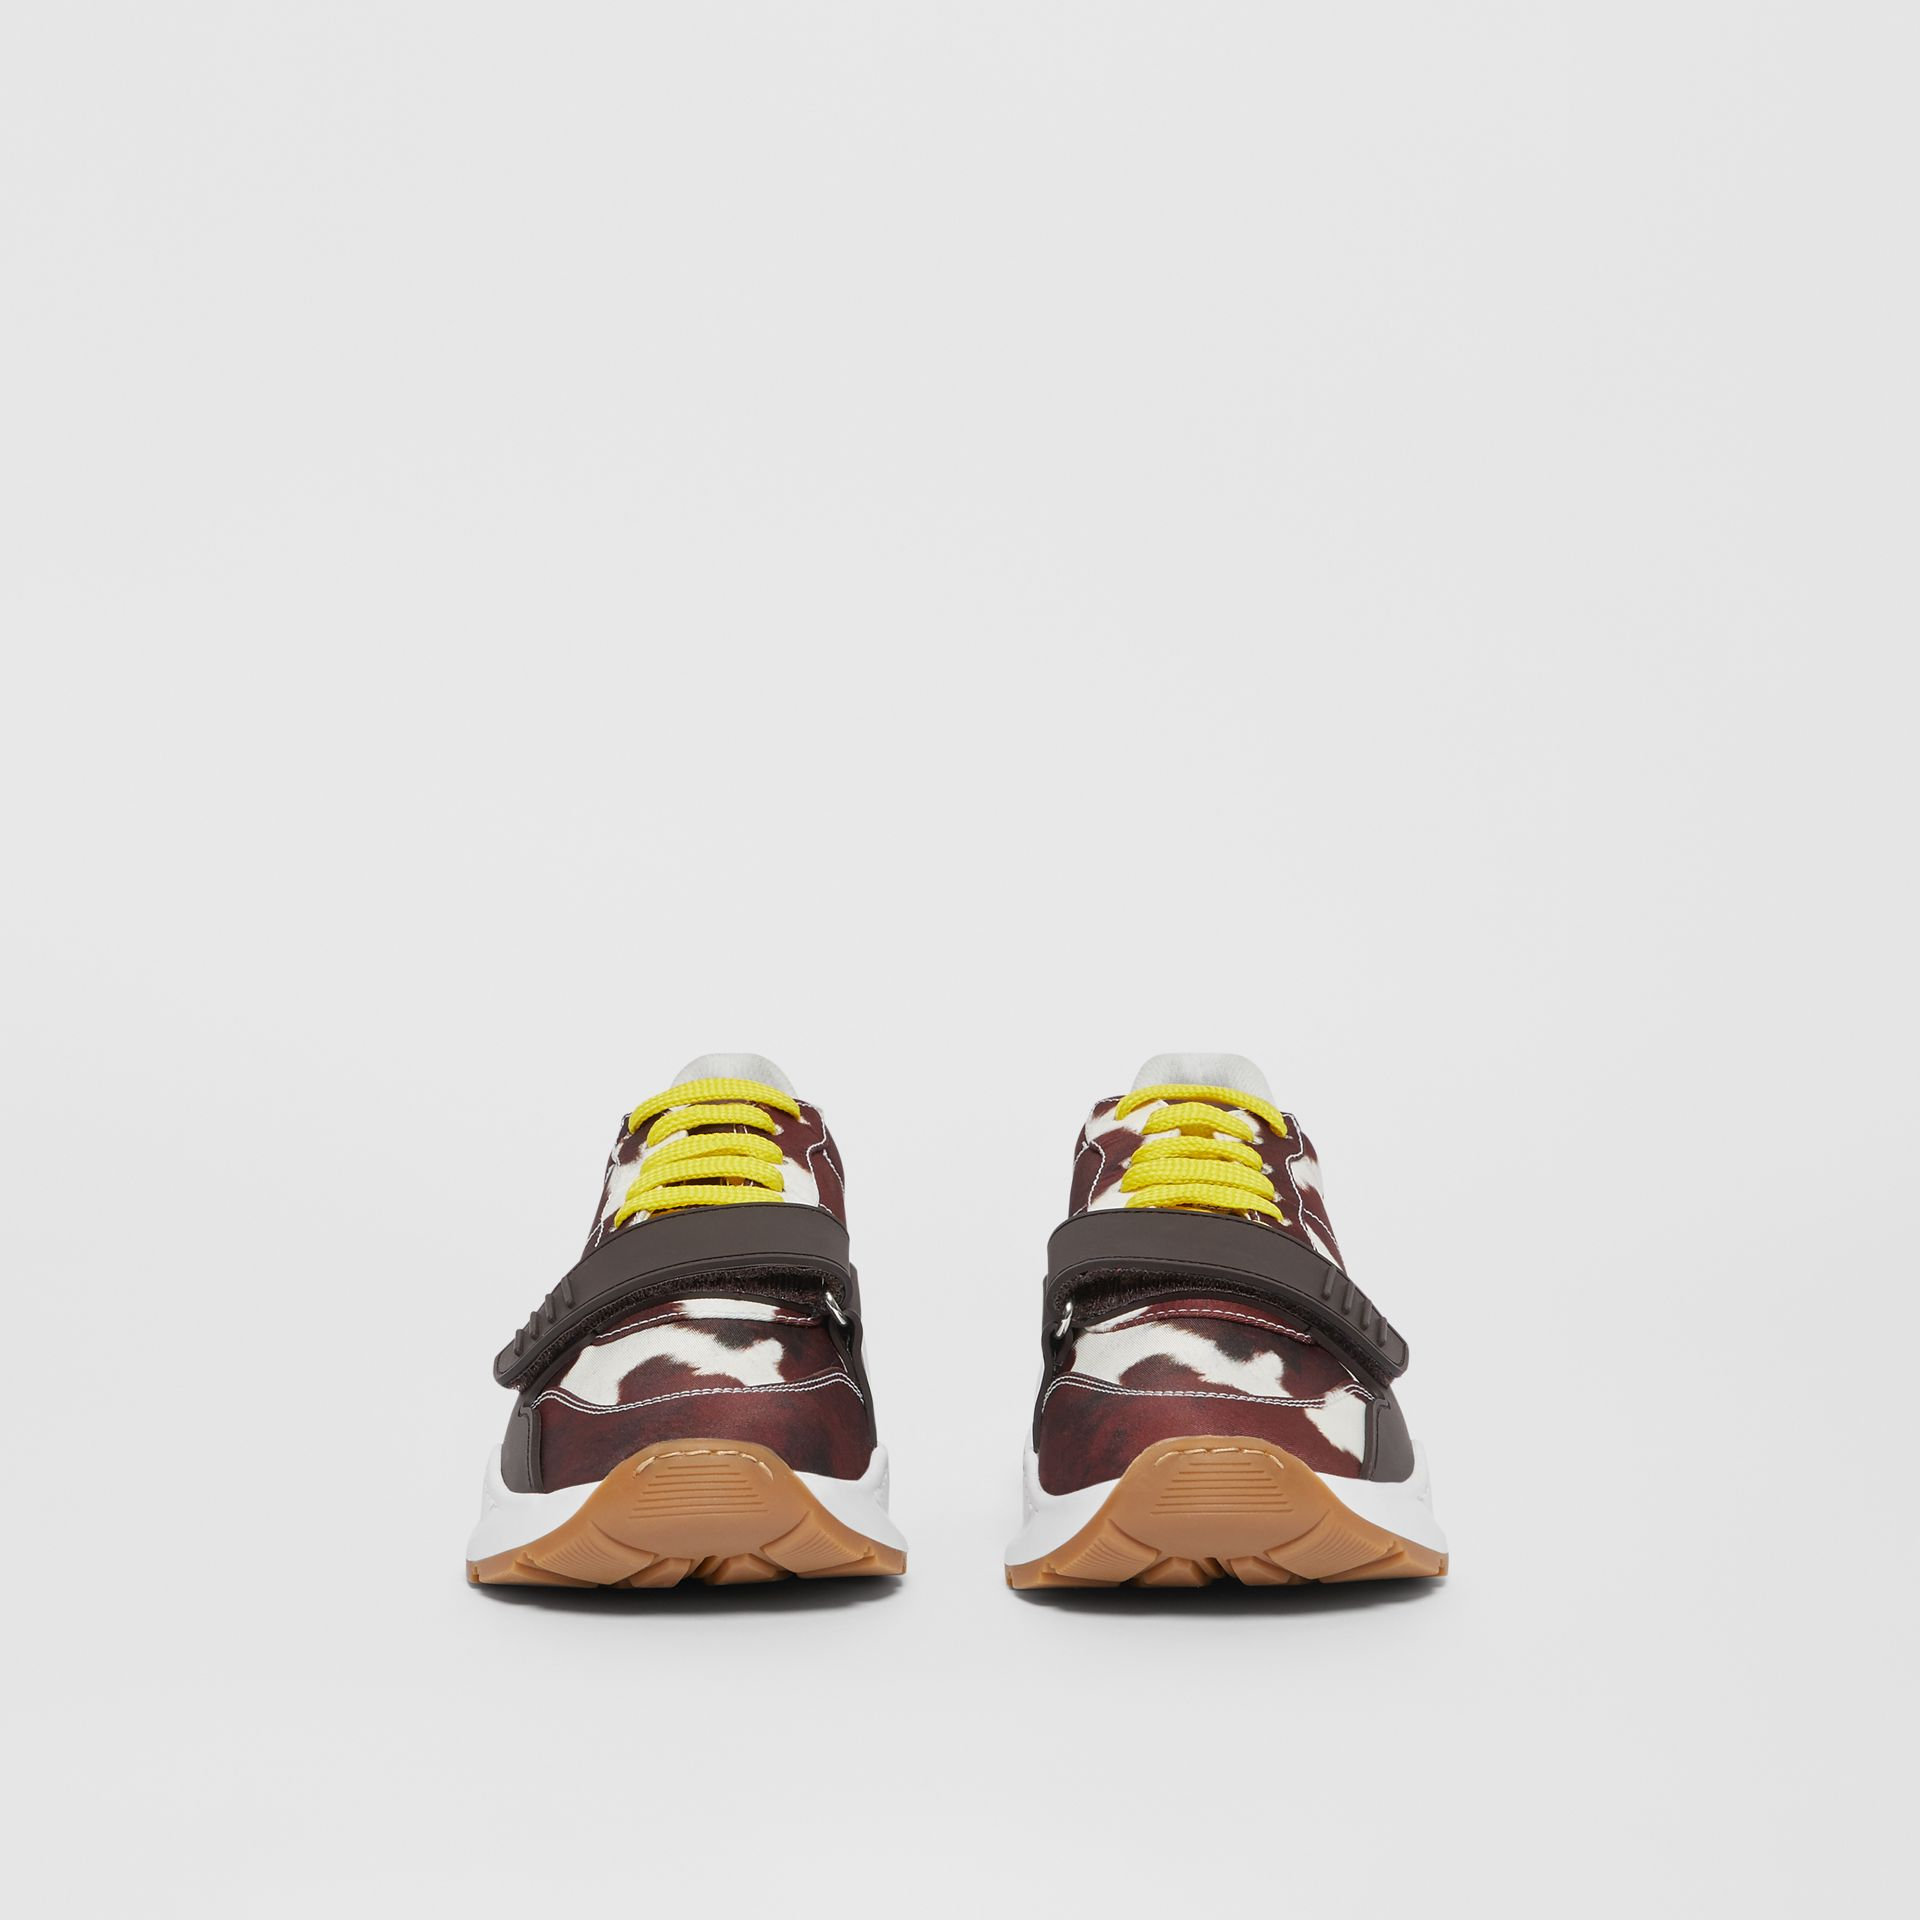 Cow Print Nylon Sneakers in Brown - Women | Burberry Hong Kong S.A.R - gallery image 3